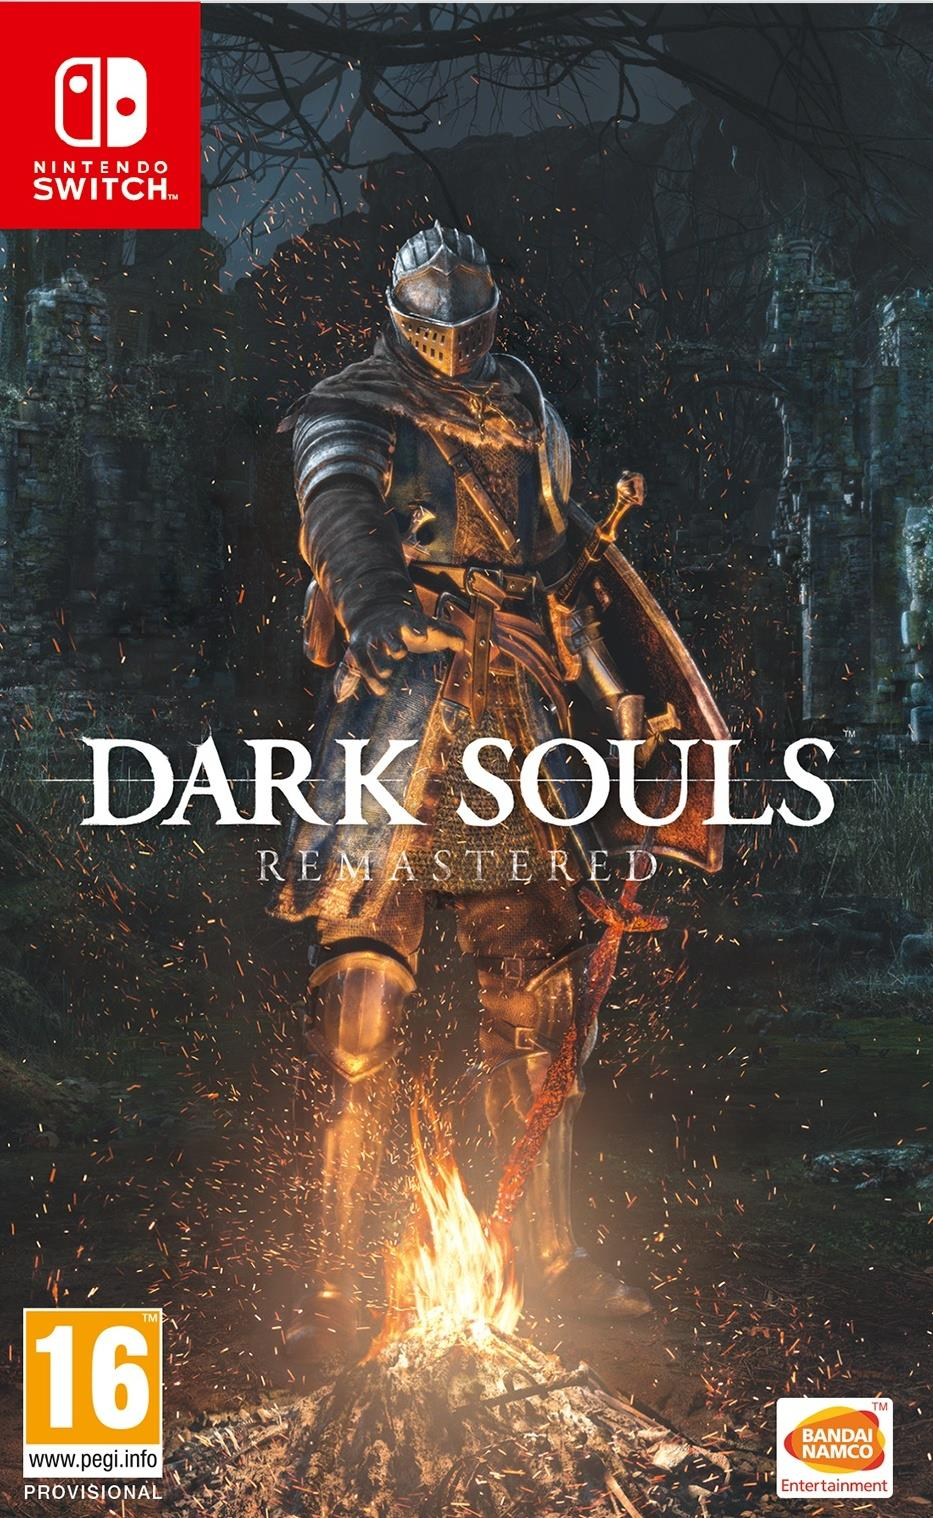 NINTENDO GAME NINTENDO SWITCH DARK SOULS REMASTERED